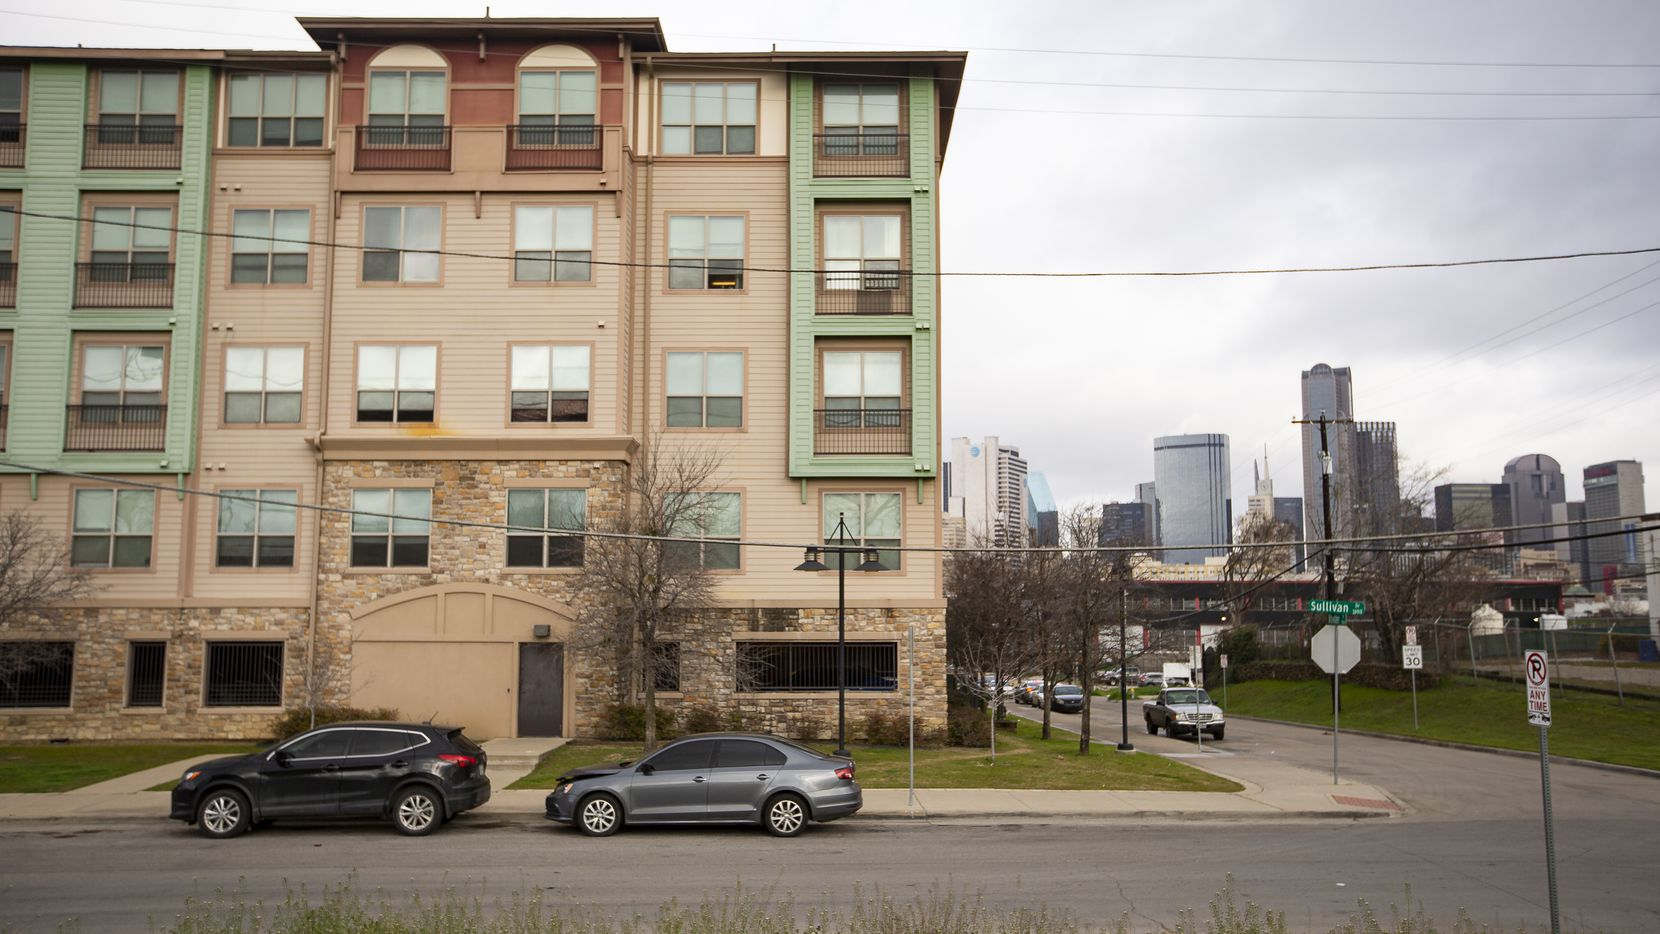 The Belleview apartments are in the Cedars neighborhood on the edge of downtown Dallas.